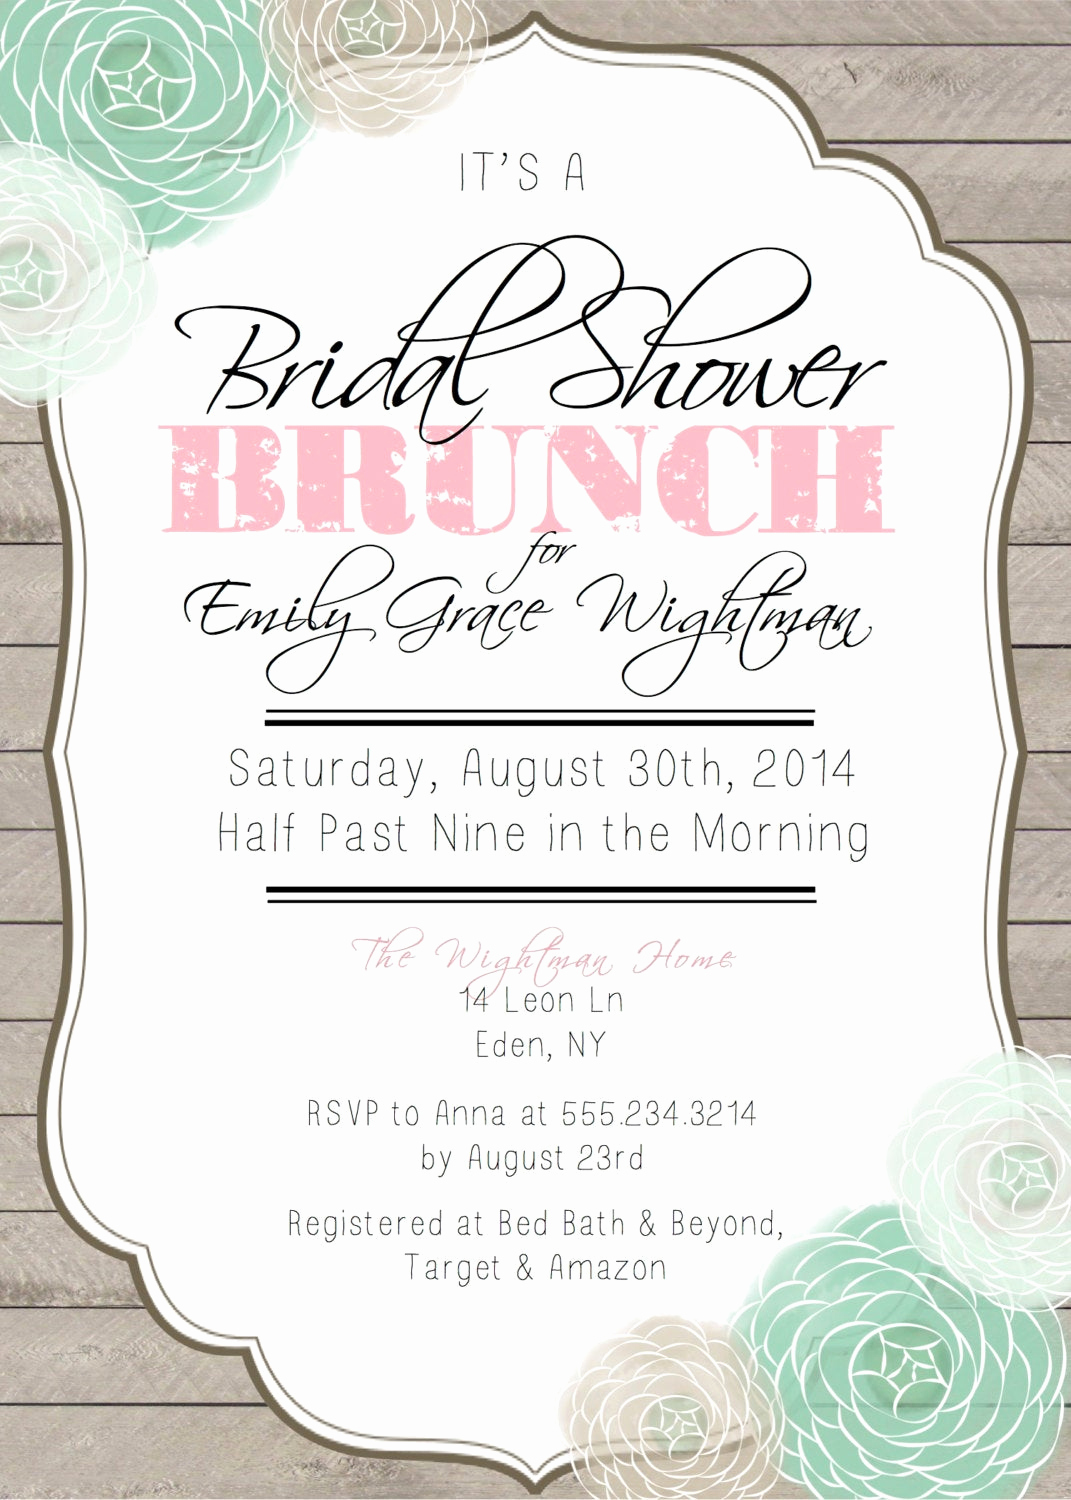 Bridal Shower Invitation Images Unique Bridal Shower Brunch Printable Invitation